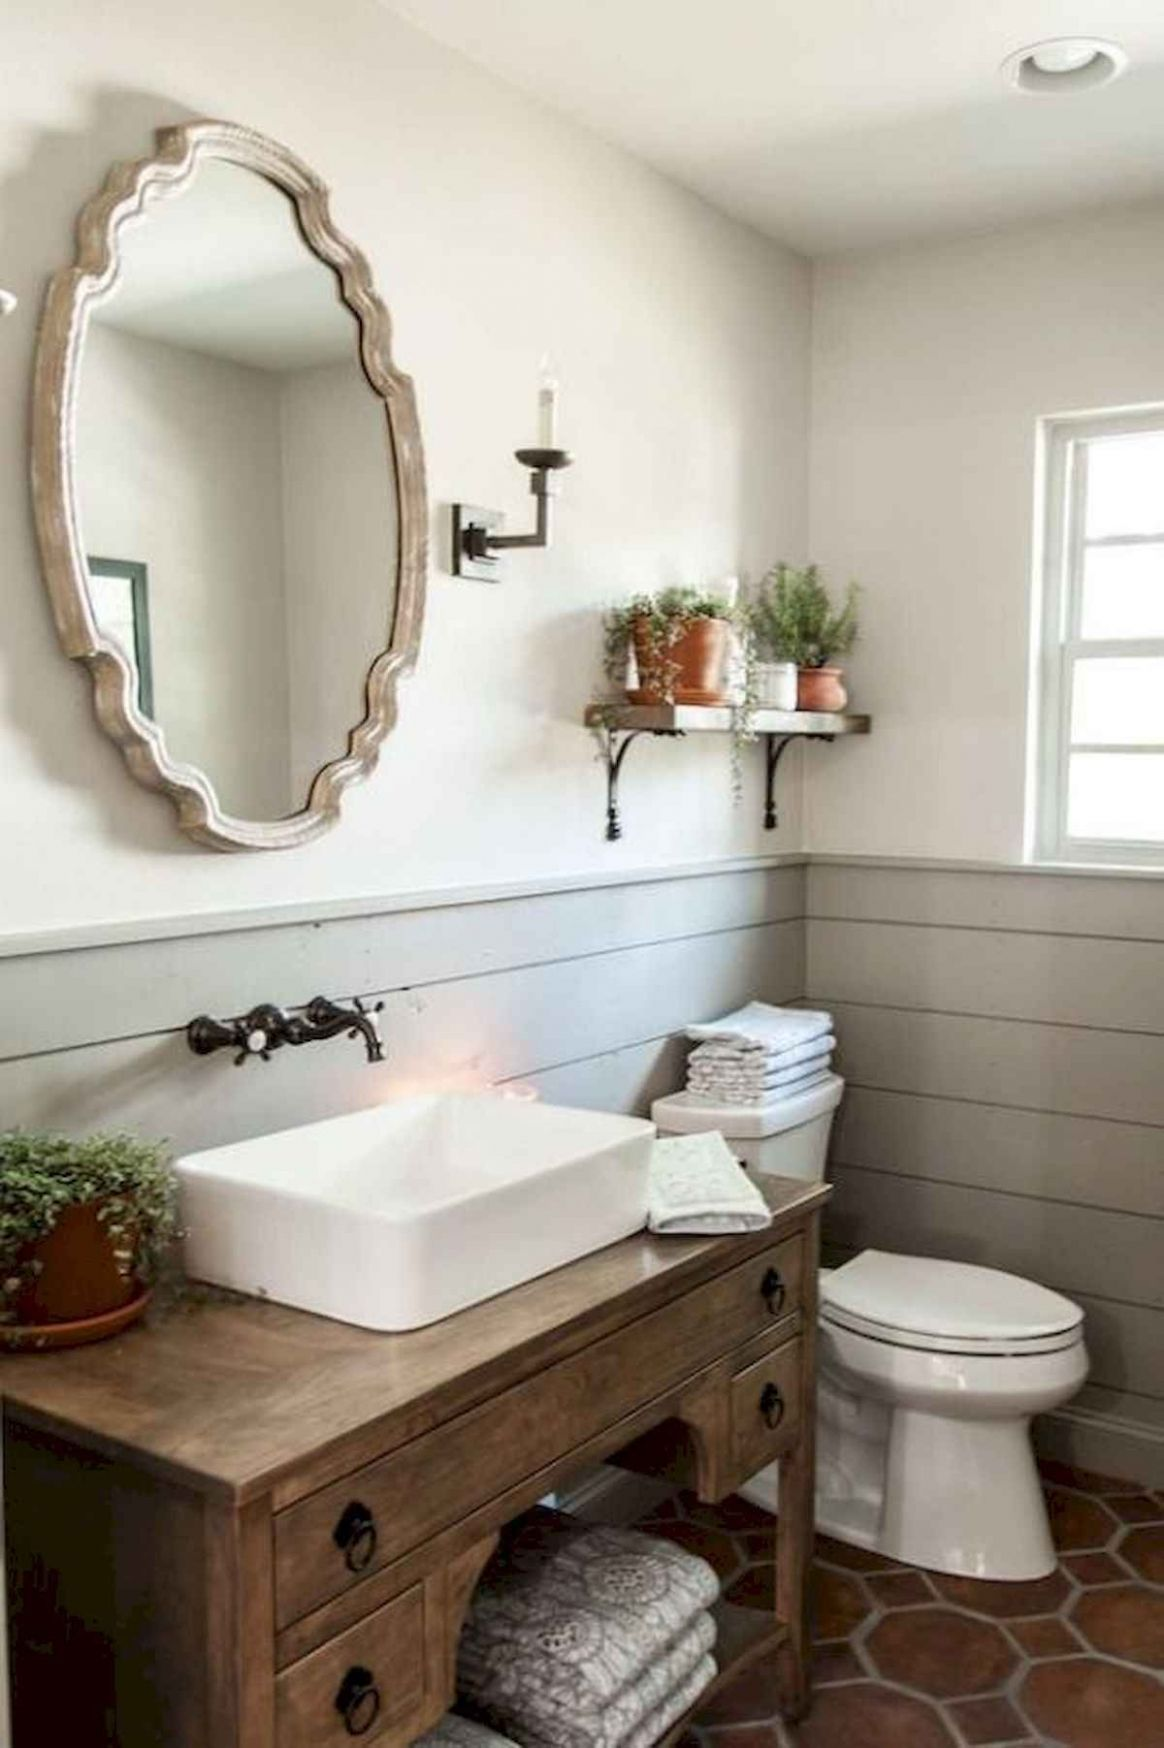 12 Lighting For Farmhouse Bathroom Ideas Decorating And Remodel (12 ...